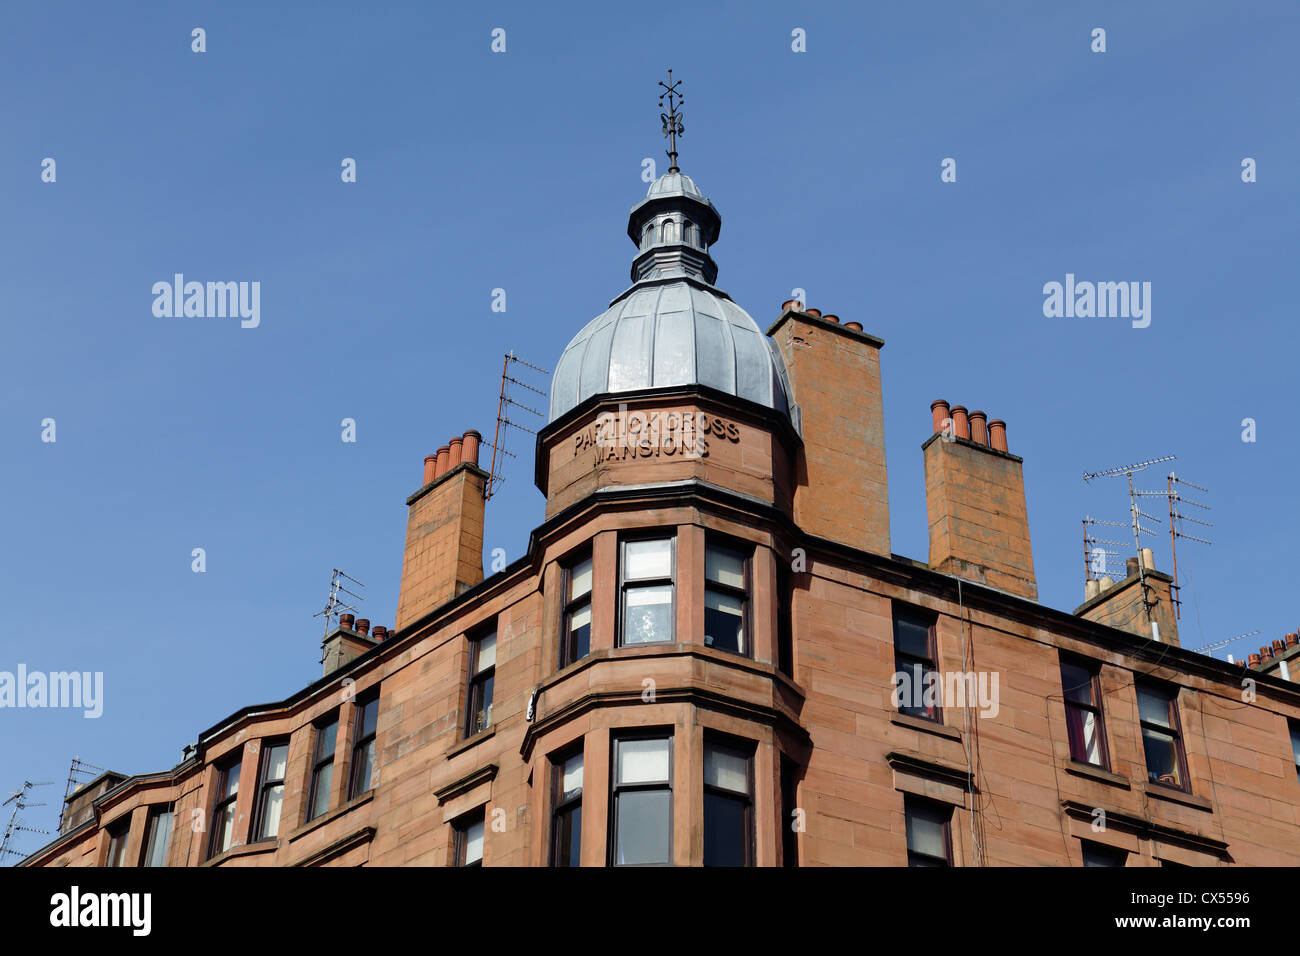 Detail of Partick Cross Mansions tenement housing in the West End of Glasgow, Scotland, UK - Stock Image